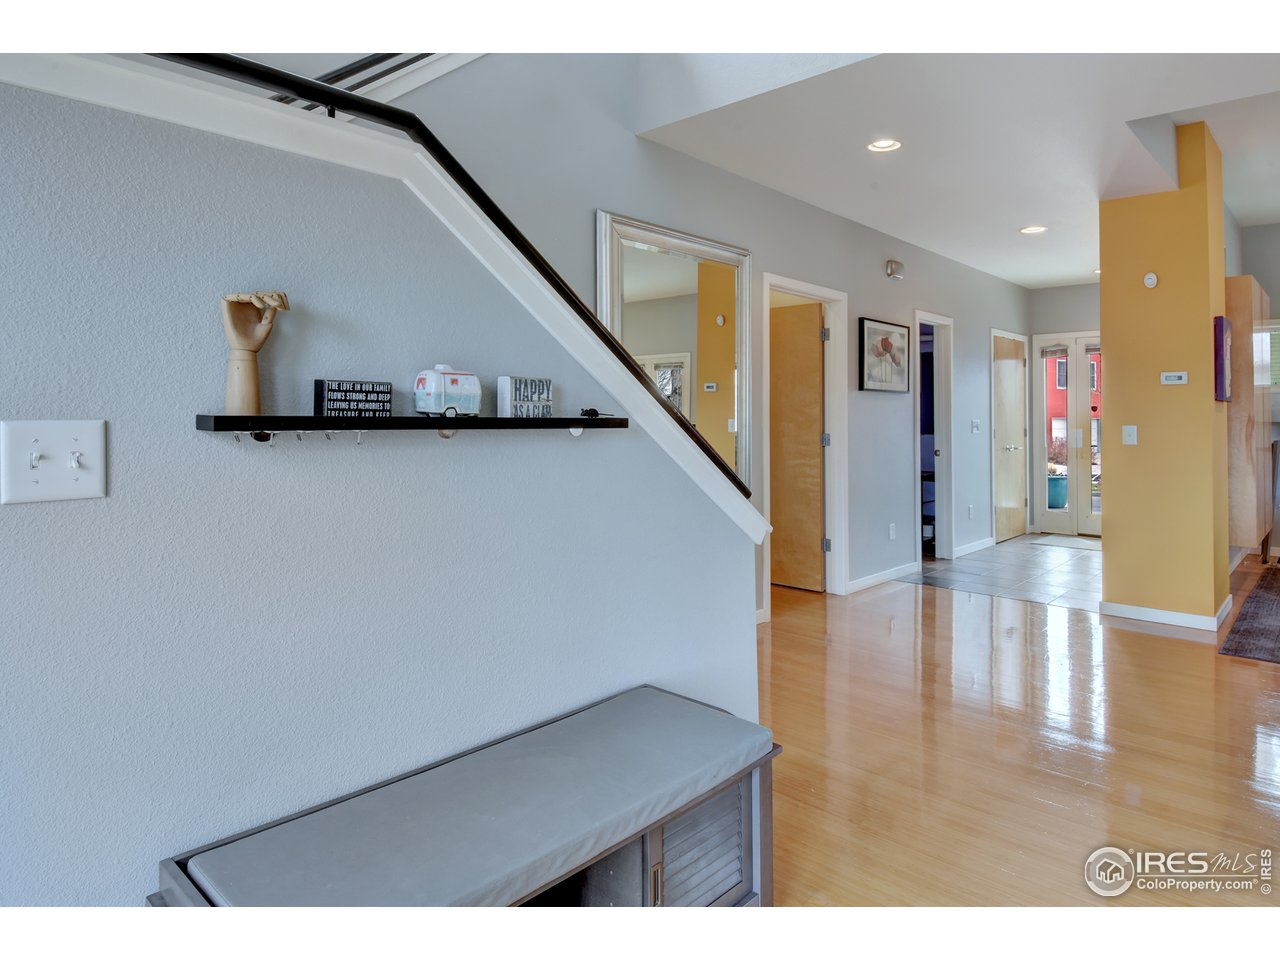 Slate Tile in foyer, Gleaming Bamboo throughout